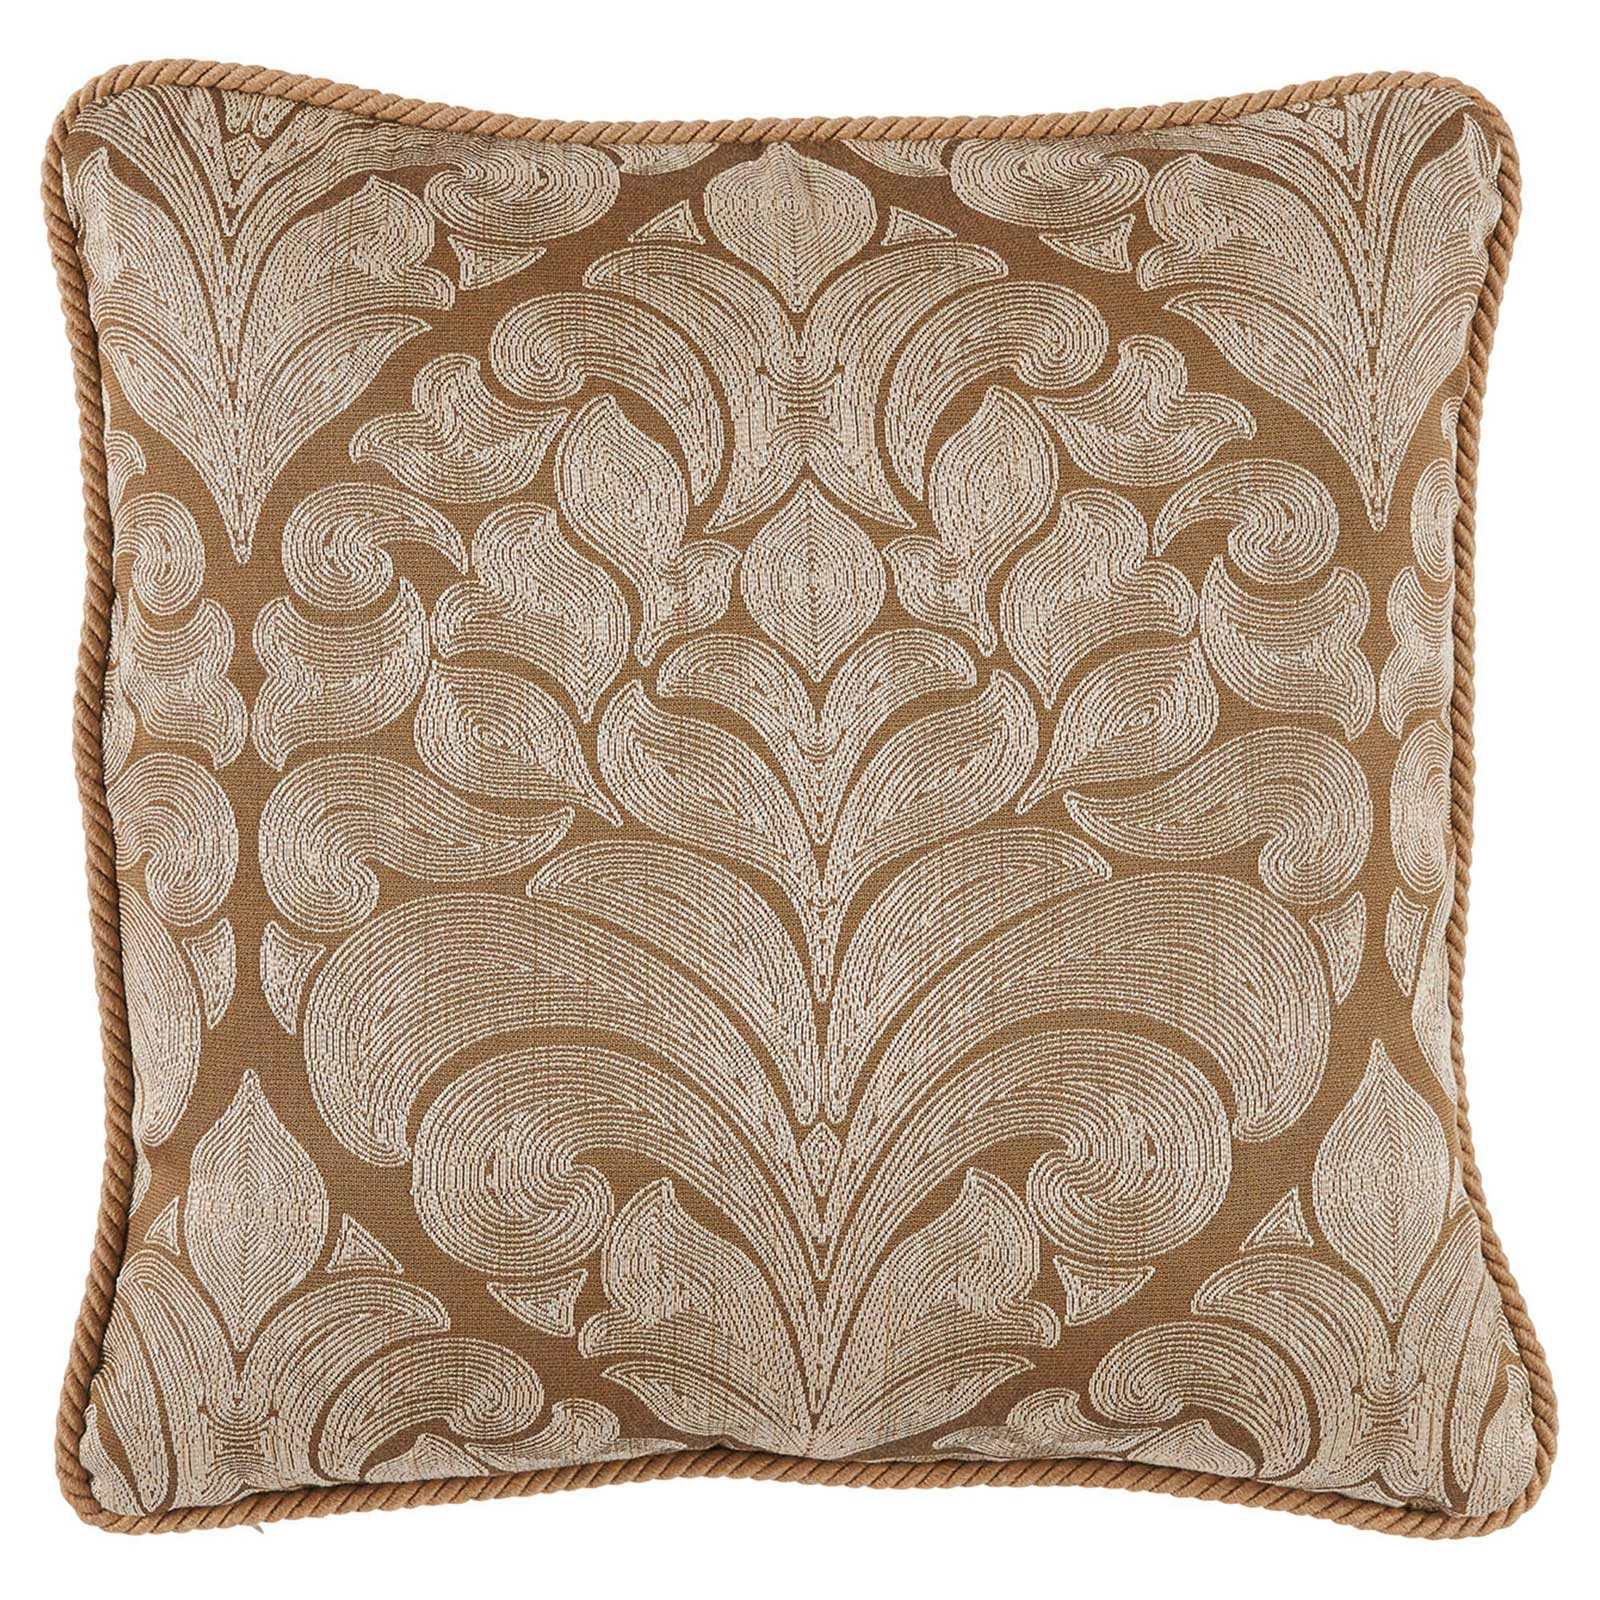 Pepin French Woven Gold Medallion Pillow - 22x22